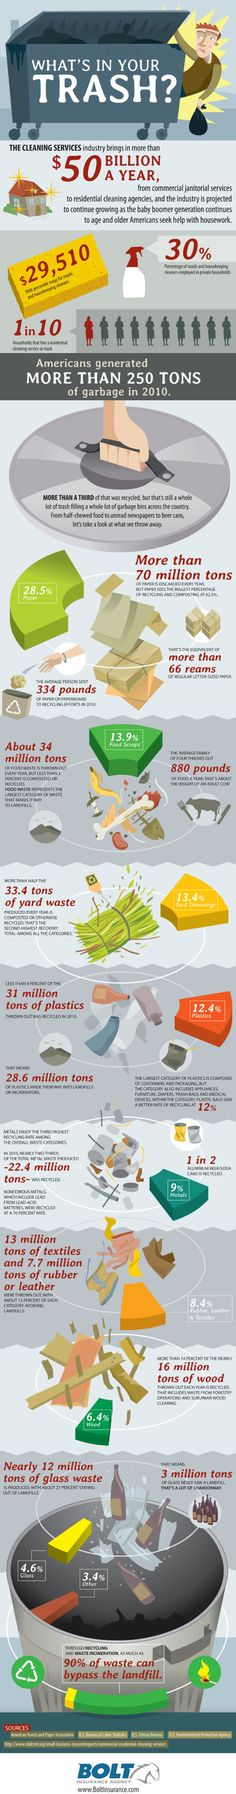 The What's In Your Trash infographic explores what constitutes trash in America. From Bolt Insurance, this design breaks down all of the stuff we throw away.